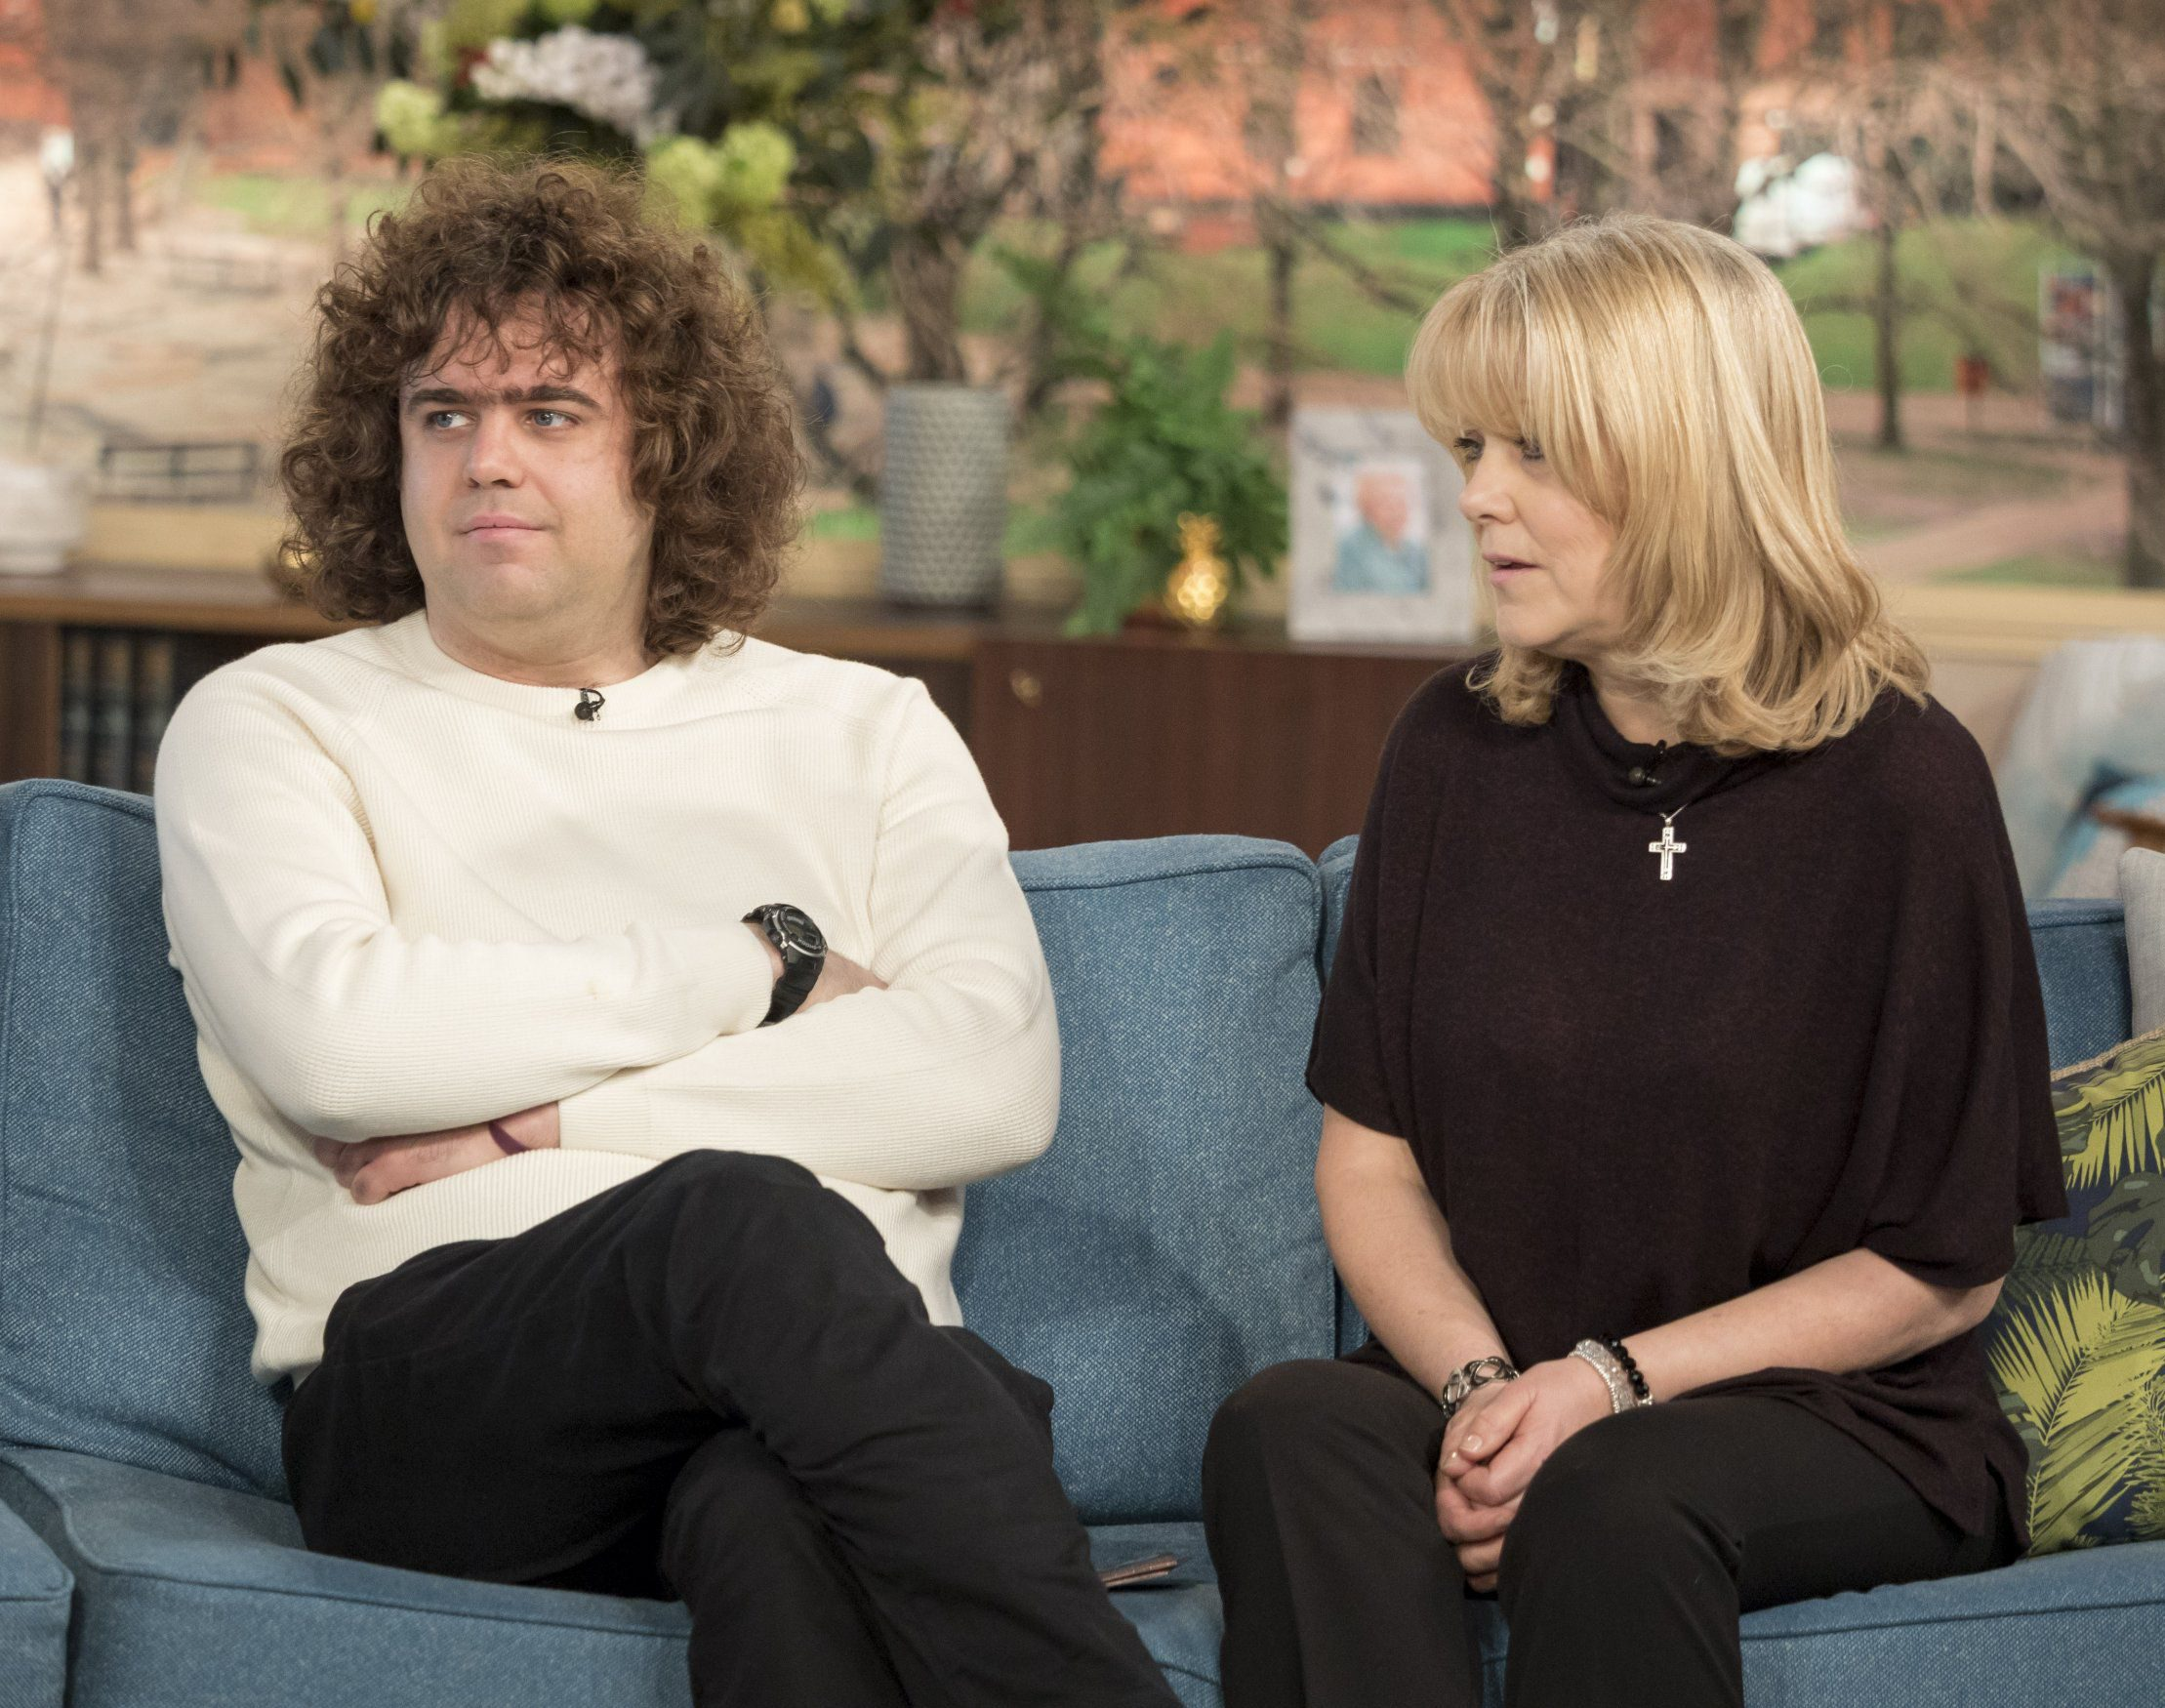 EDITORIAL USE ONLY. NO MERCHANDISING Mandatory Credit: Photo by Ken McKay/ITV/REX/Shutterstock (8150150h) Daniel Wakeford and Carol Wakeford 'This Morning' TV show, London, UK - 30 Jan 2017 Audiences went wild for singer songwriter Daniel Wakeford (29) when he first appeared on The Undateables - and tonights show revisits him as he continues his search for love. Since he was last featured on the programme, LOOKING FOR LOVE: UNDATEABLES FAVOURITE DANIEL & MUM 600 + SET UP CLIP, autistic Daniels music career has taken off, but he still craved a partner in crime. He joins us alongside his mother who has created a dating agency to help her son find success in the love department. Has she played cupid? Time to find out...